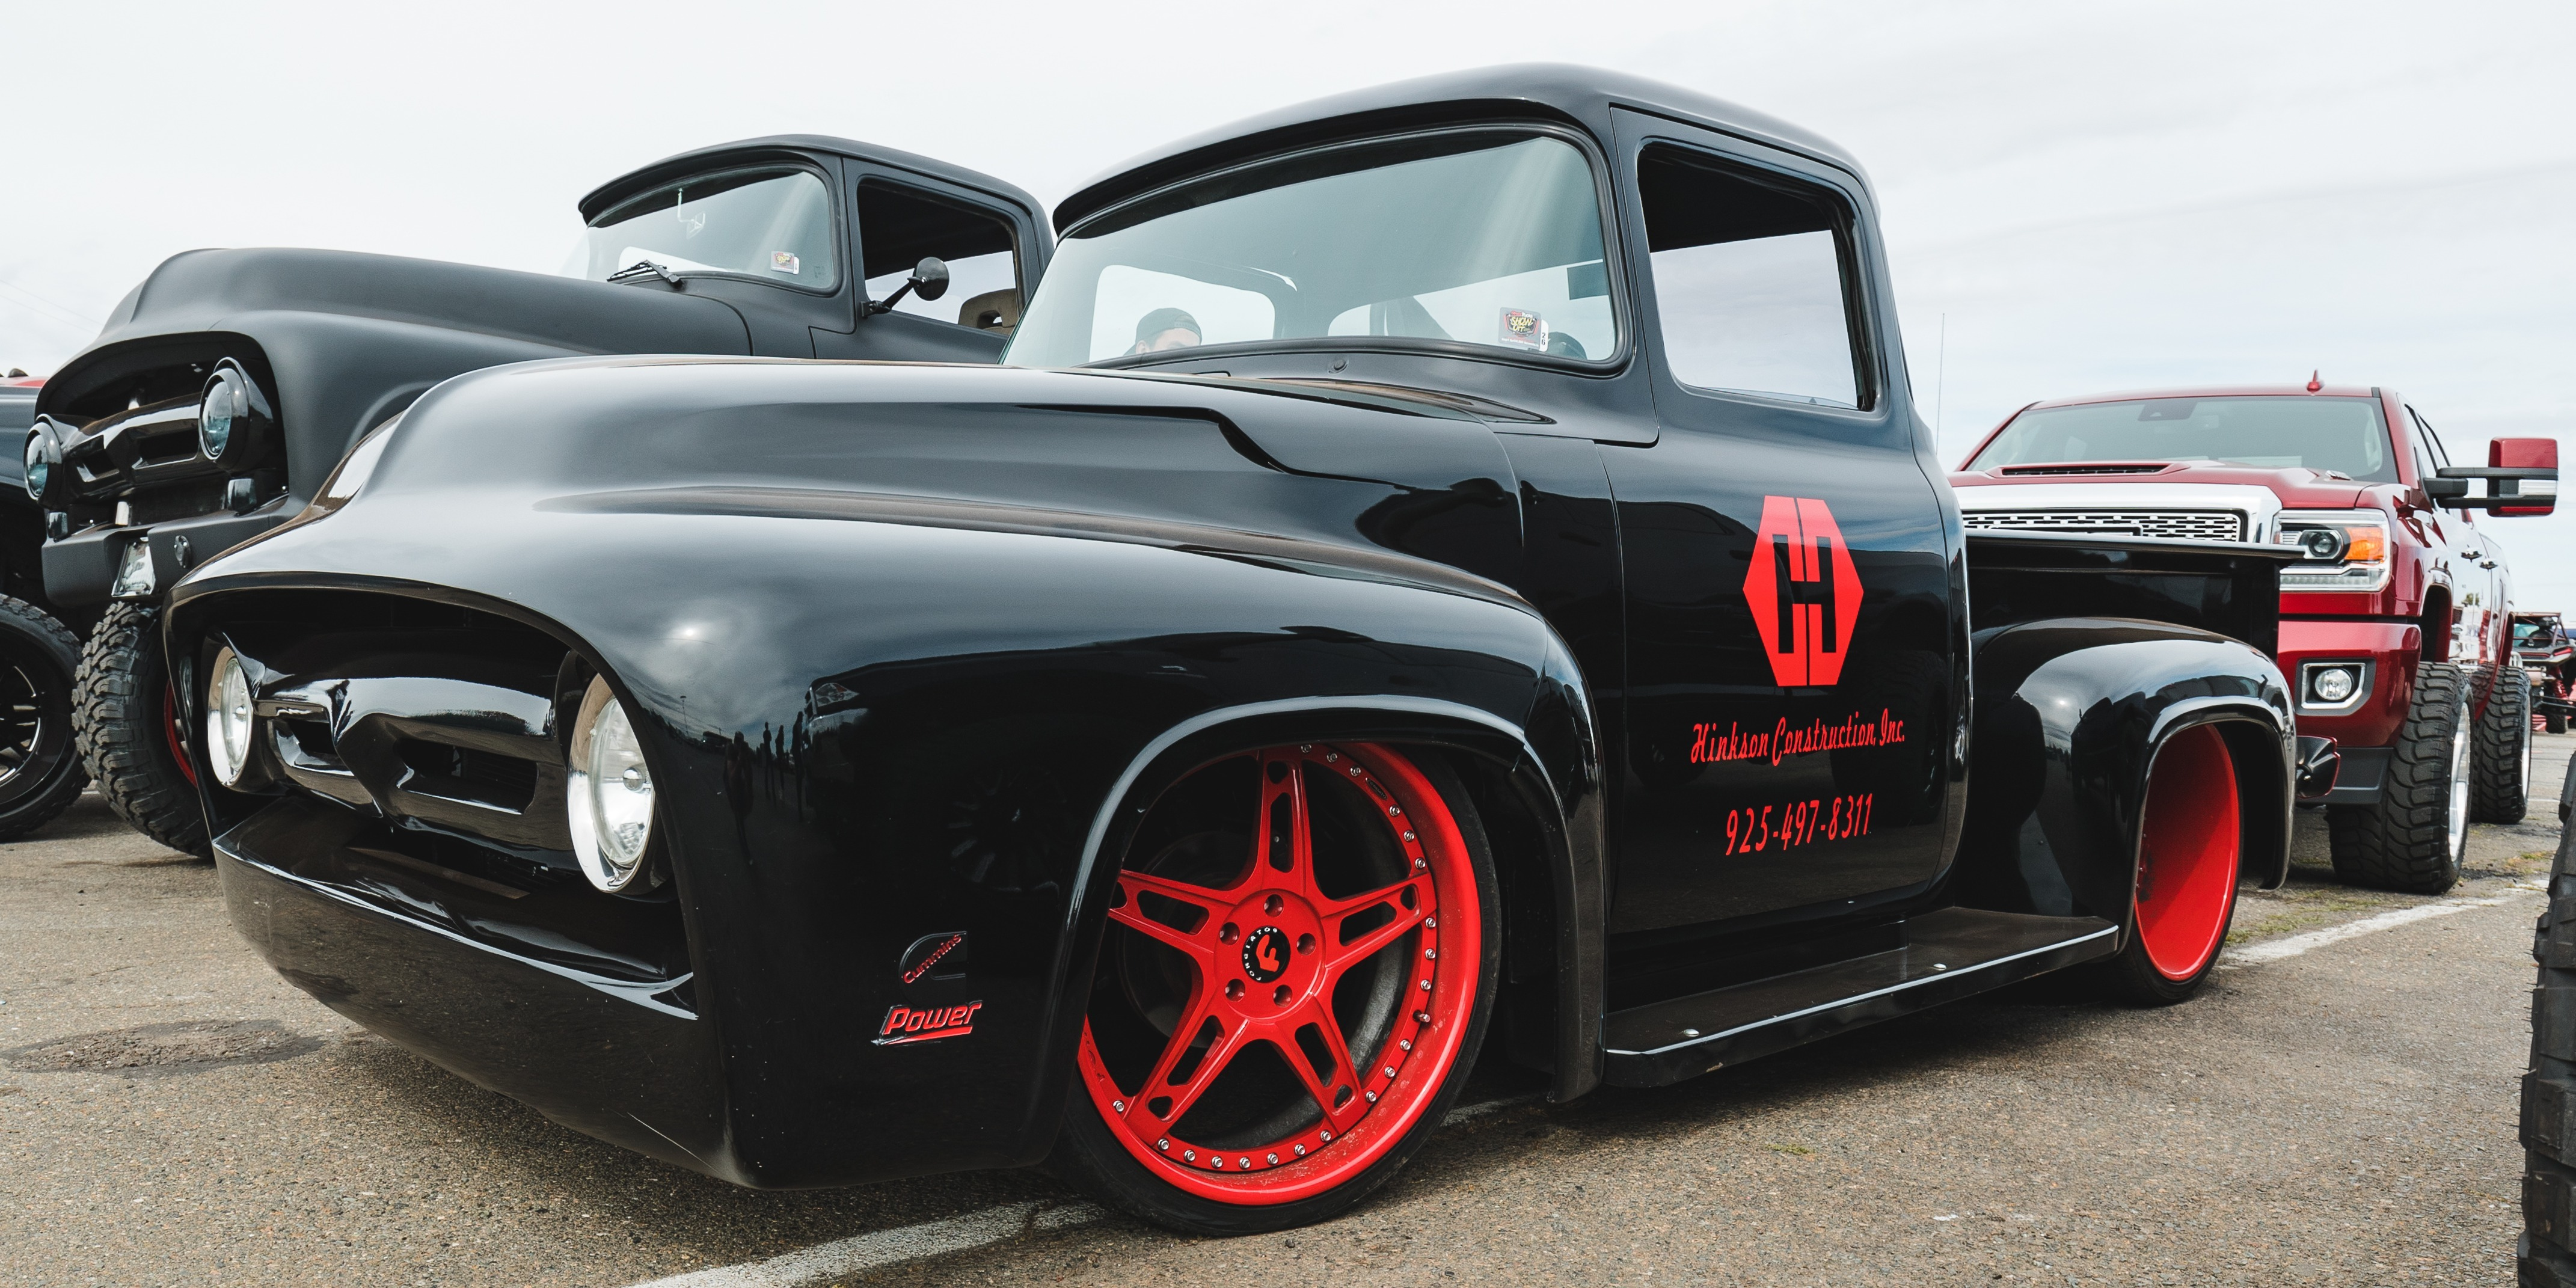 Auto Magazine to Bring Live Events Back to Fans at July 17 Truck Show